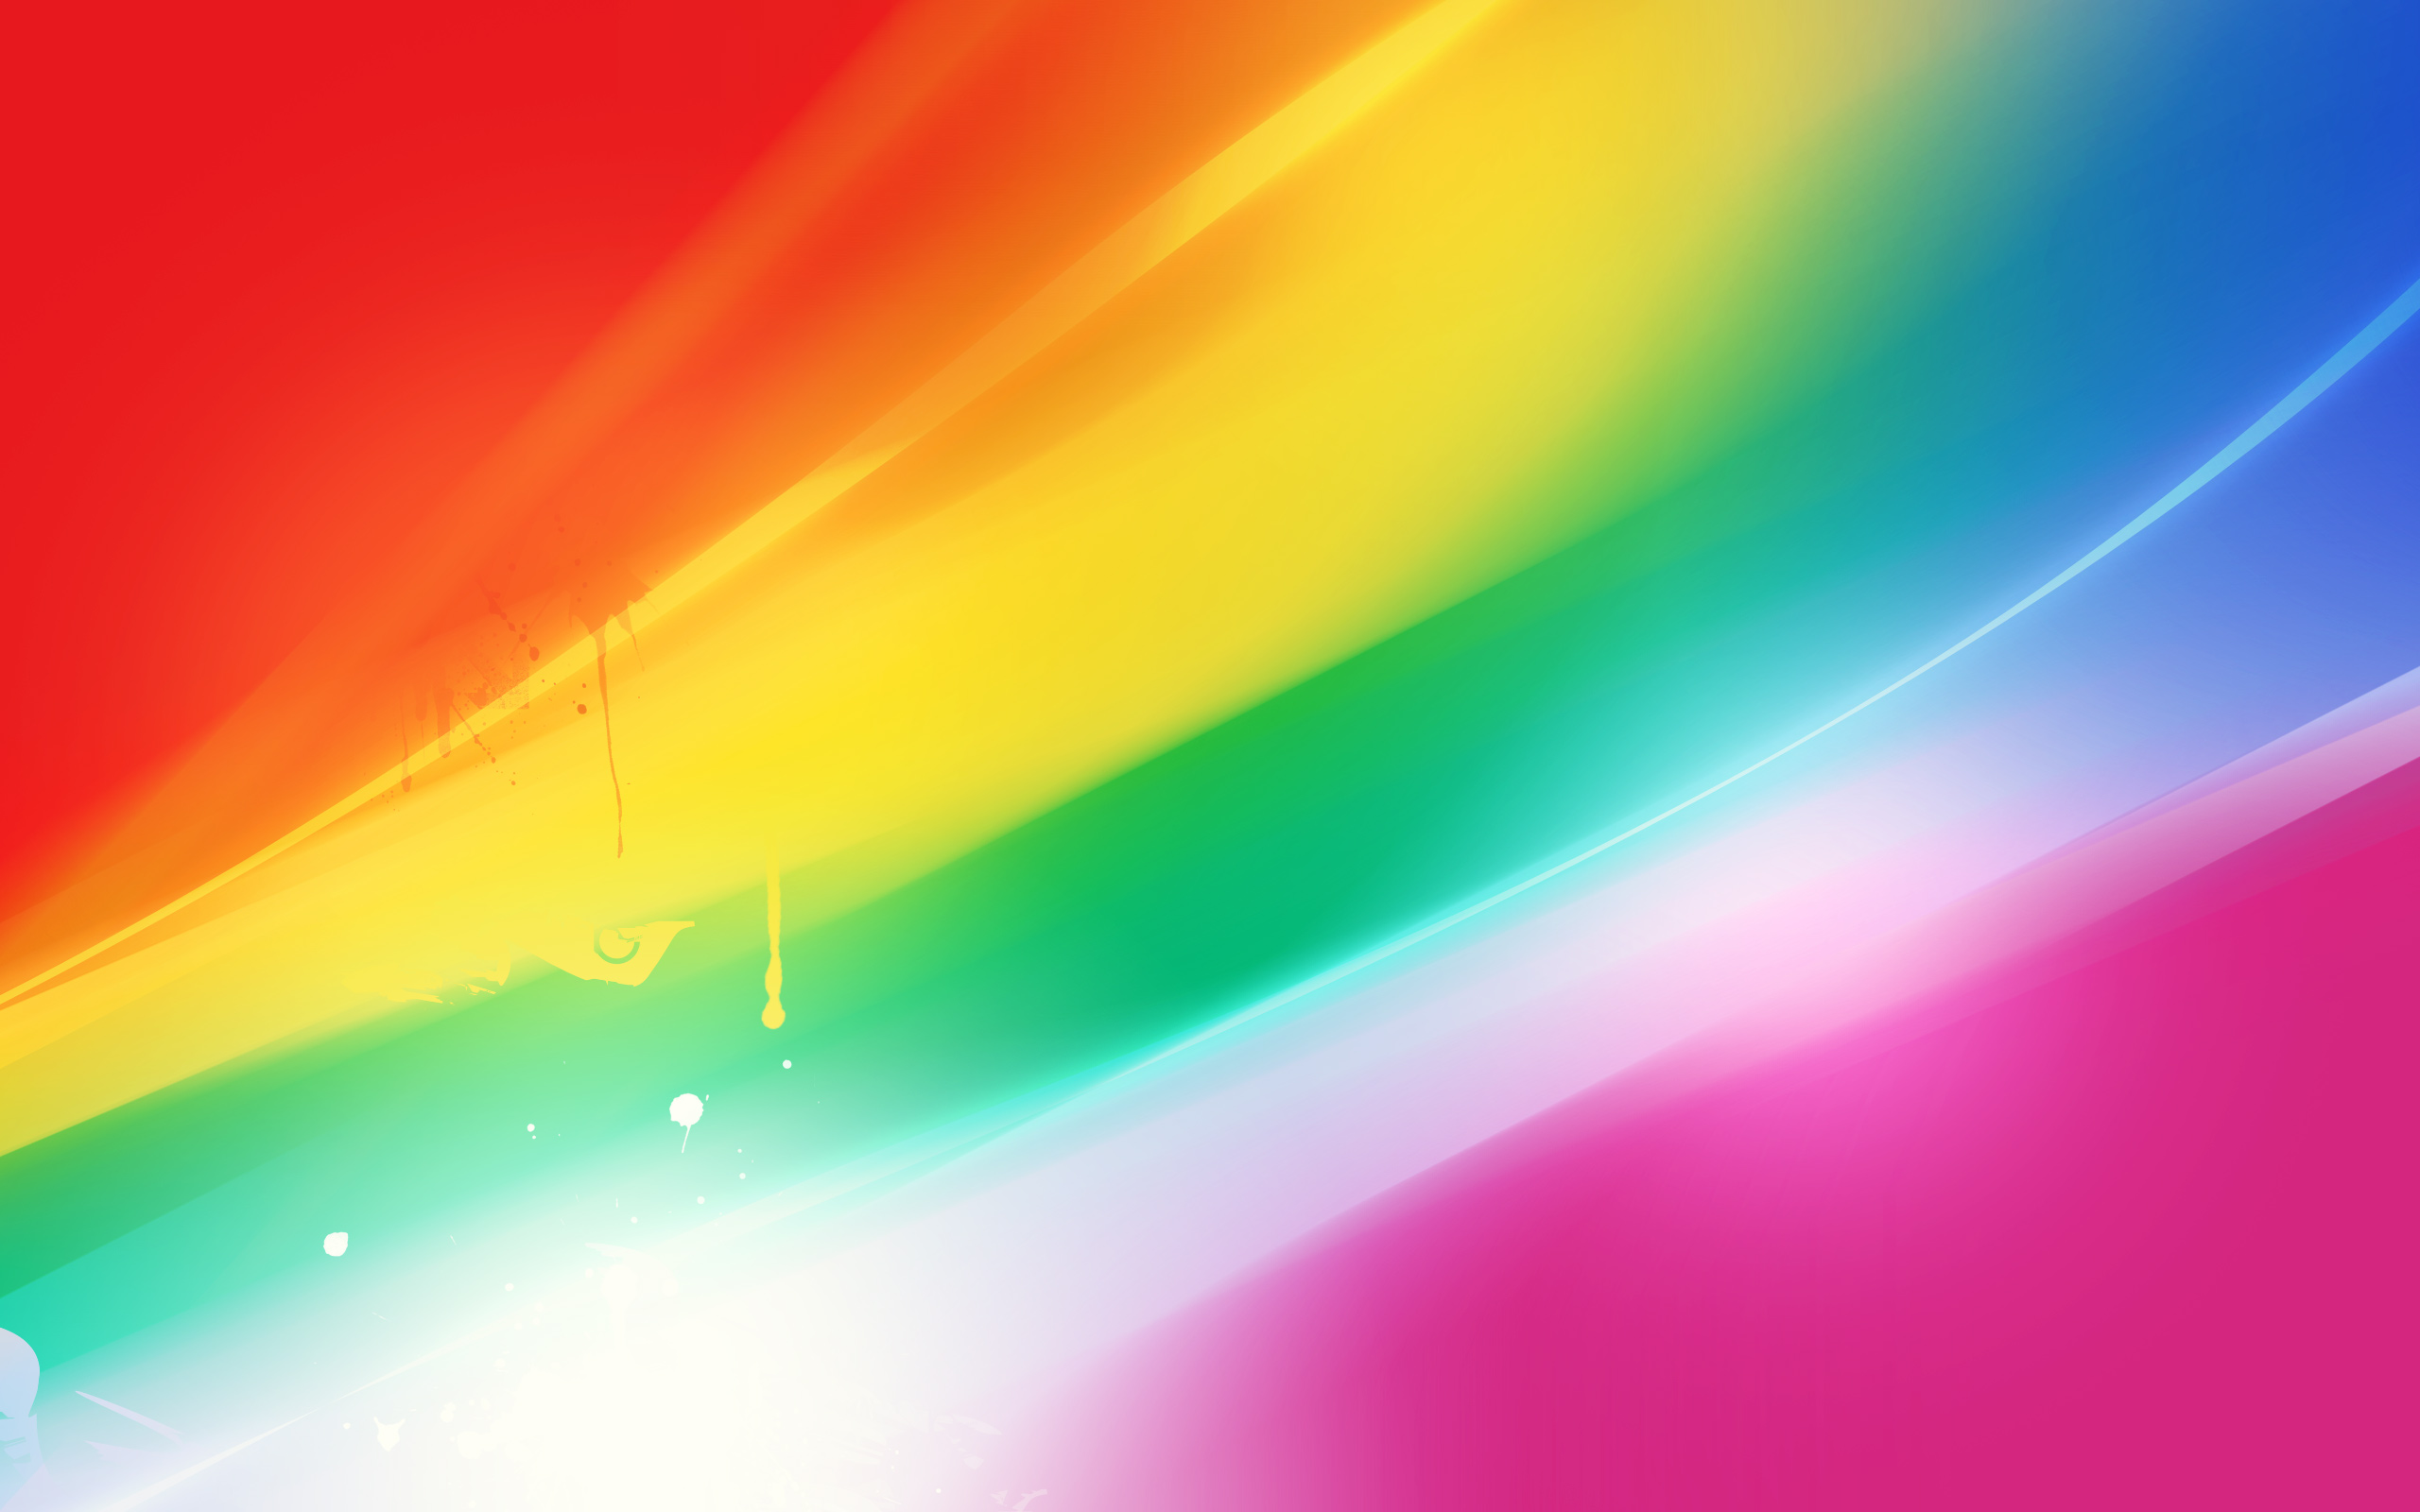 Striped Colorful Wallpapers  743.93 Kb